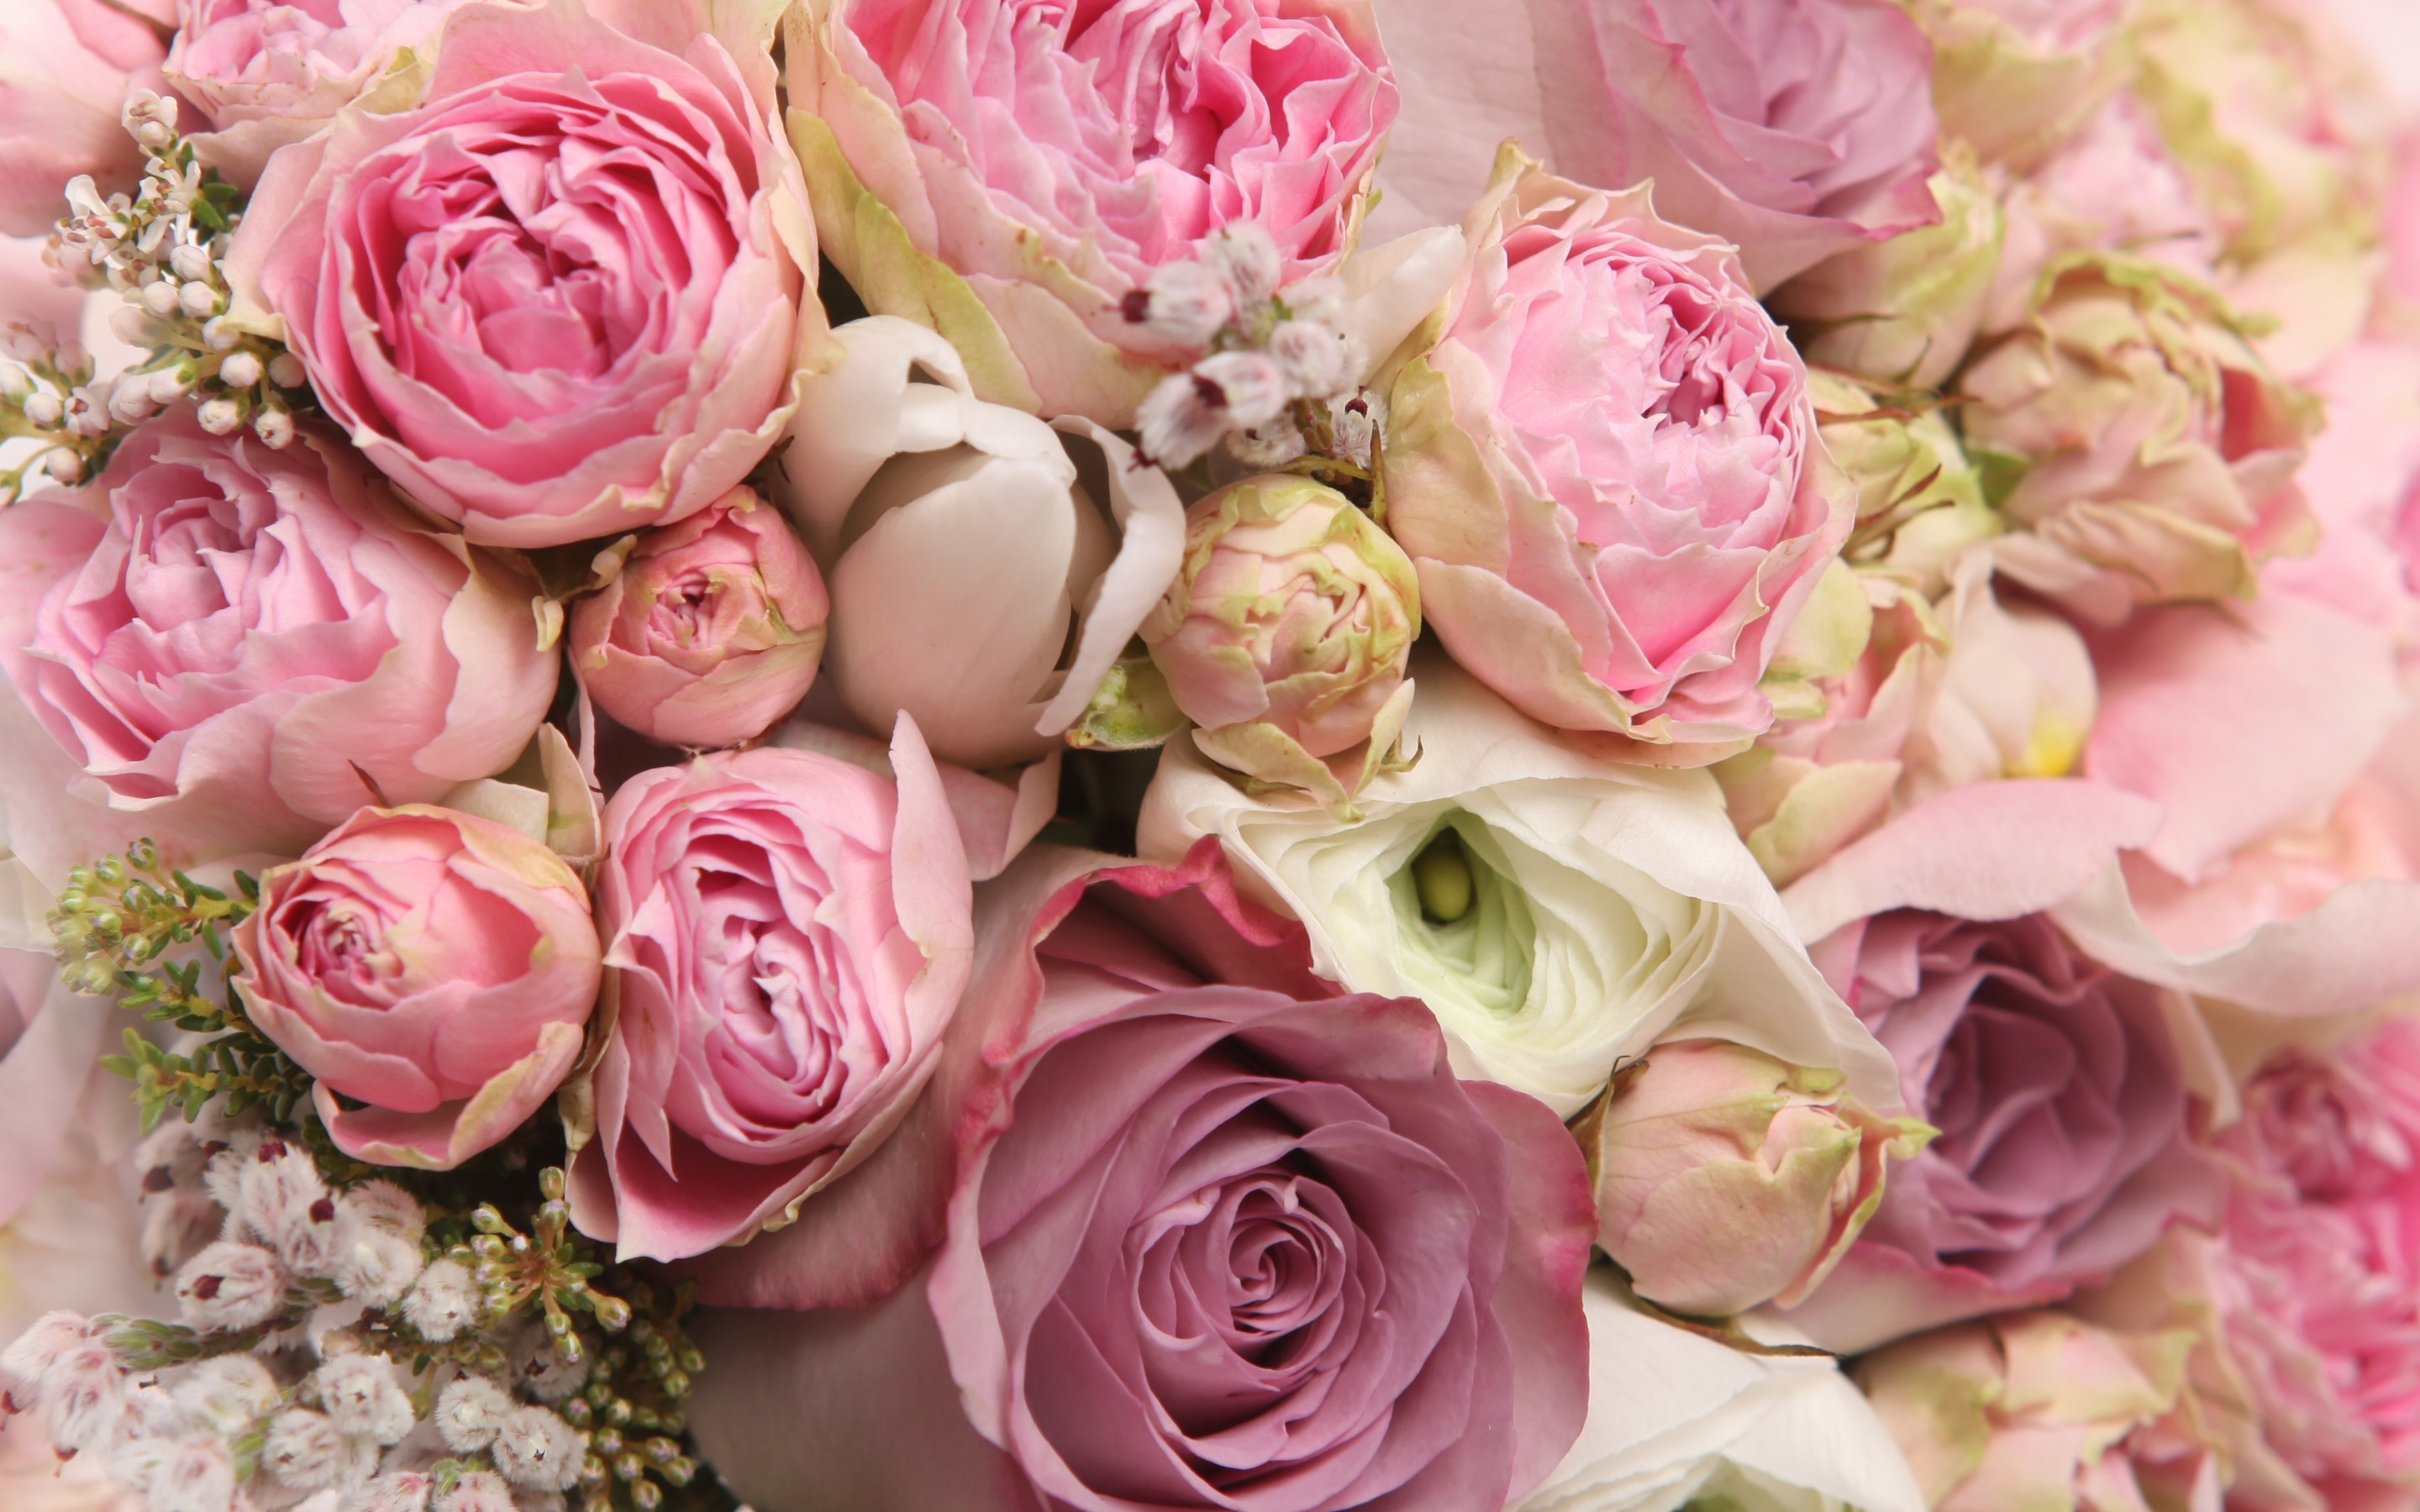 Flower Flowers Rose Roses Bouquet Beautiful Cool Nice Lovely Pretty Beauty Romance Romantic Wallpaper